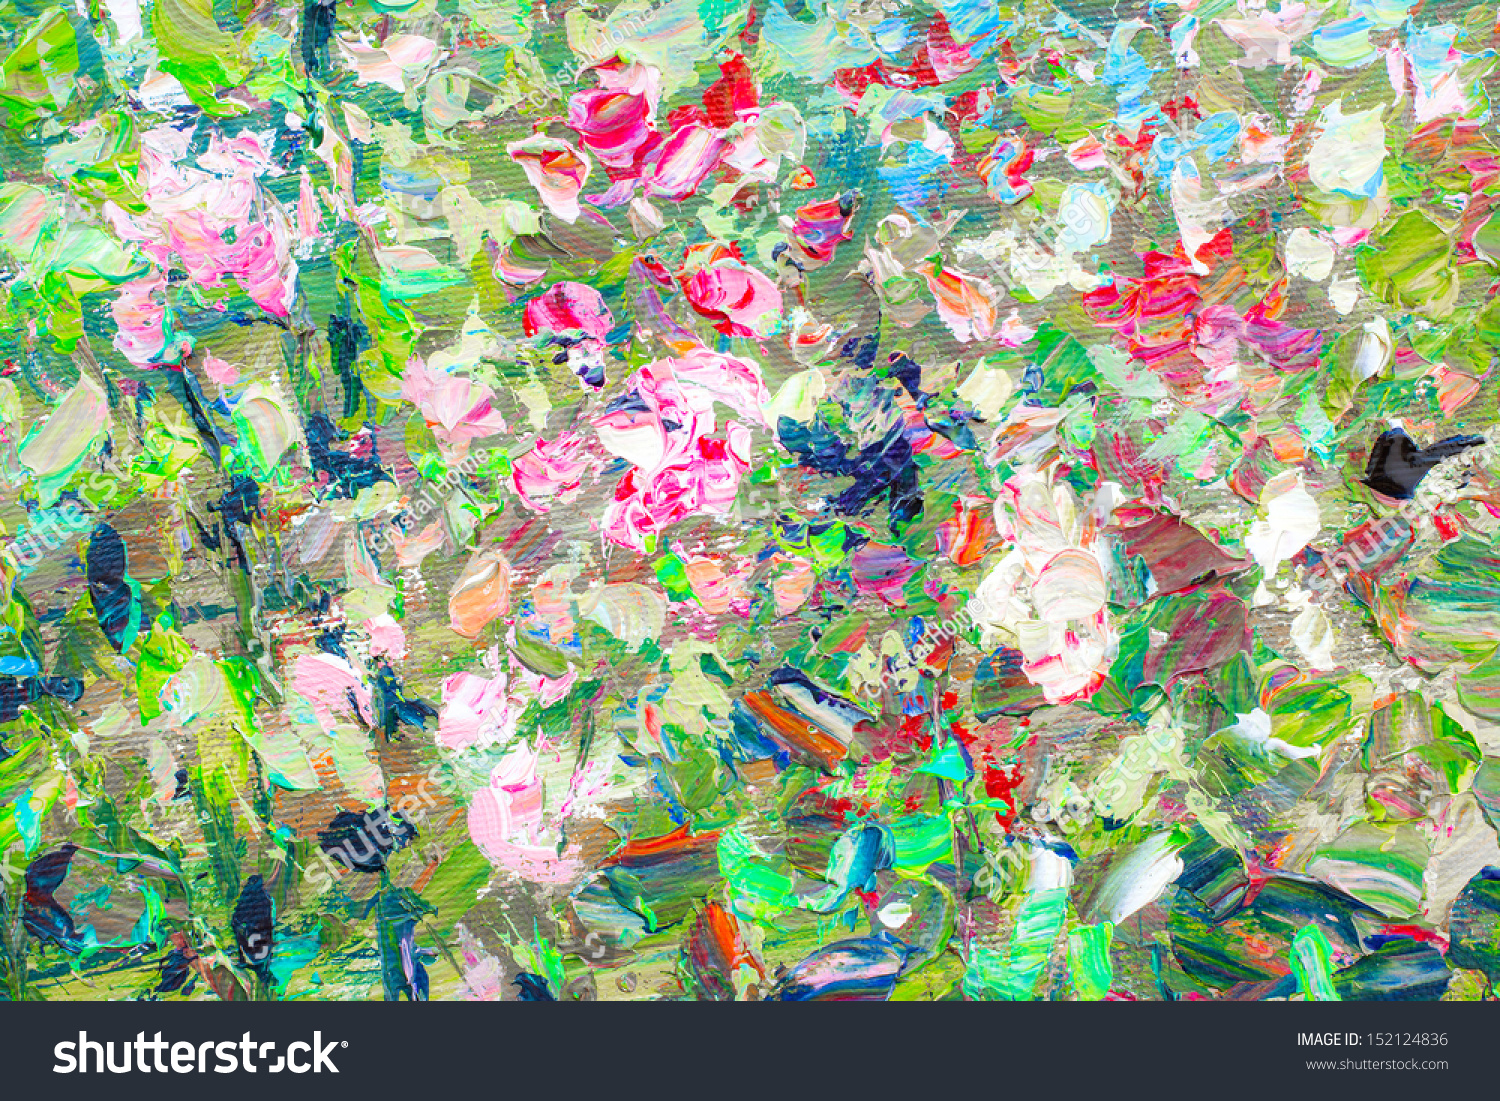 stock-photo-colorful-watercolor-painting